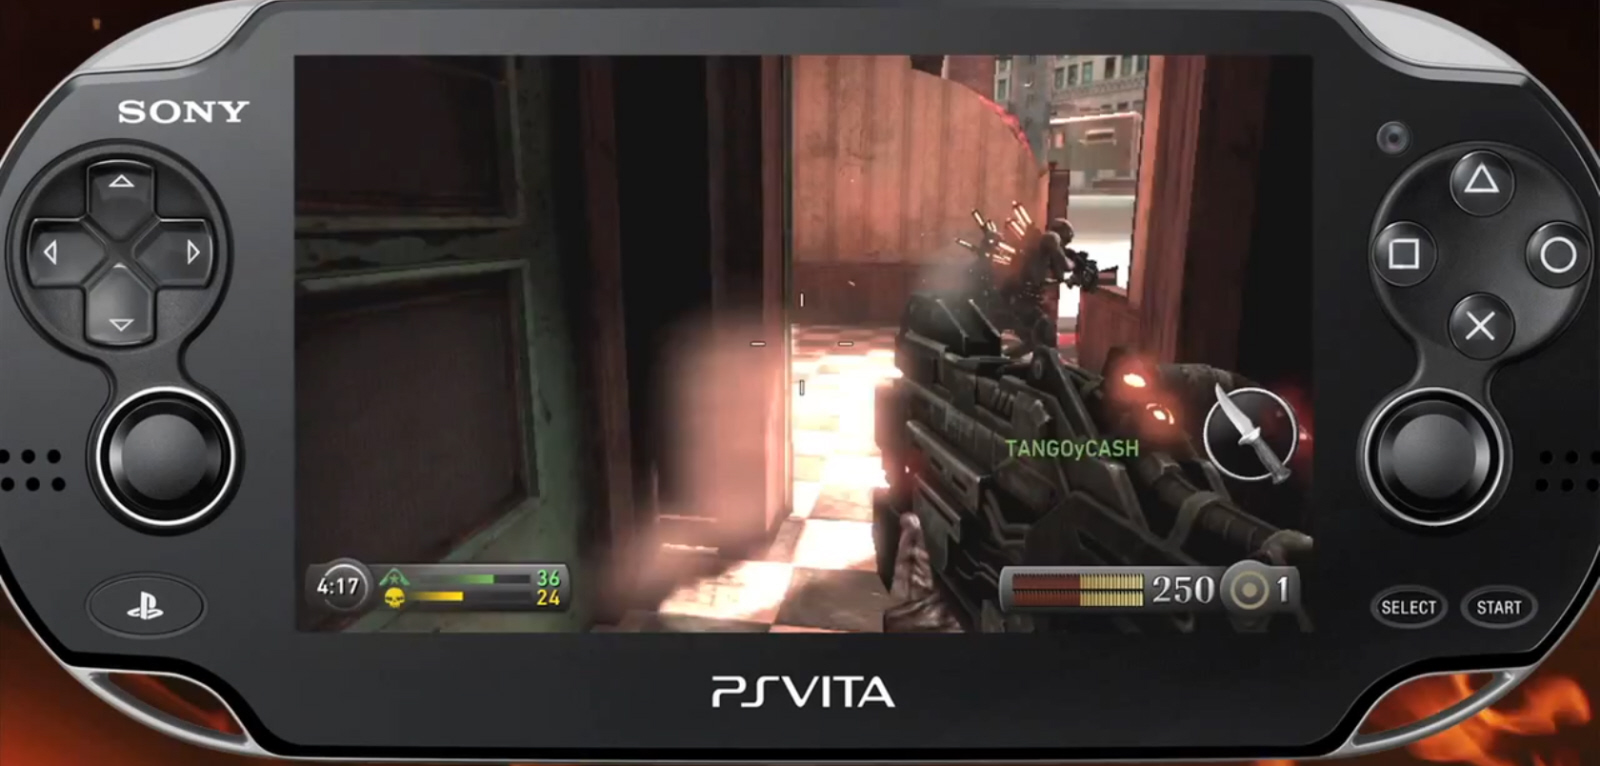 Sony Ps Vita Games Screenshots : Launch trailer watch us play games